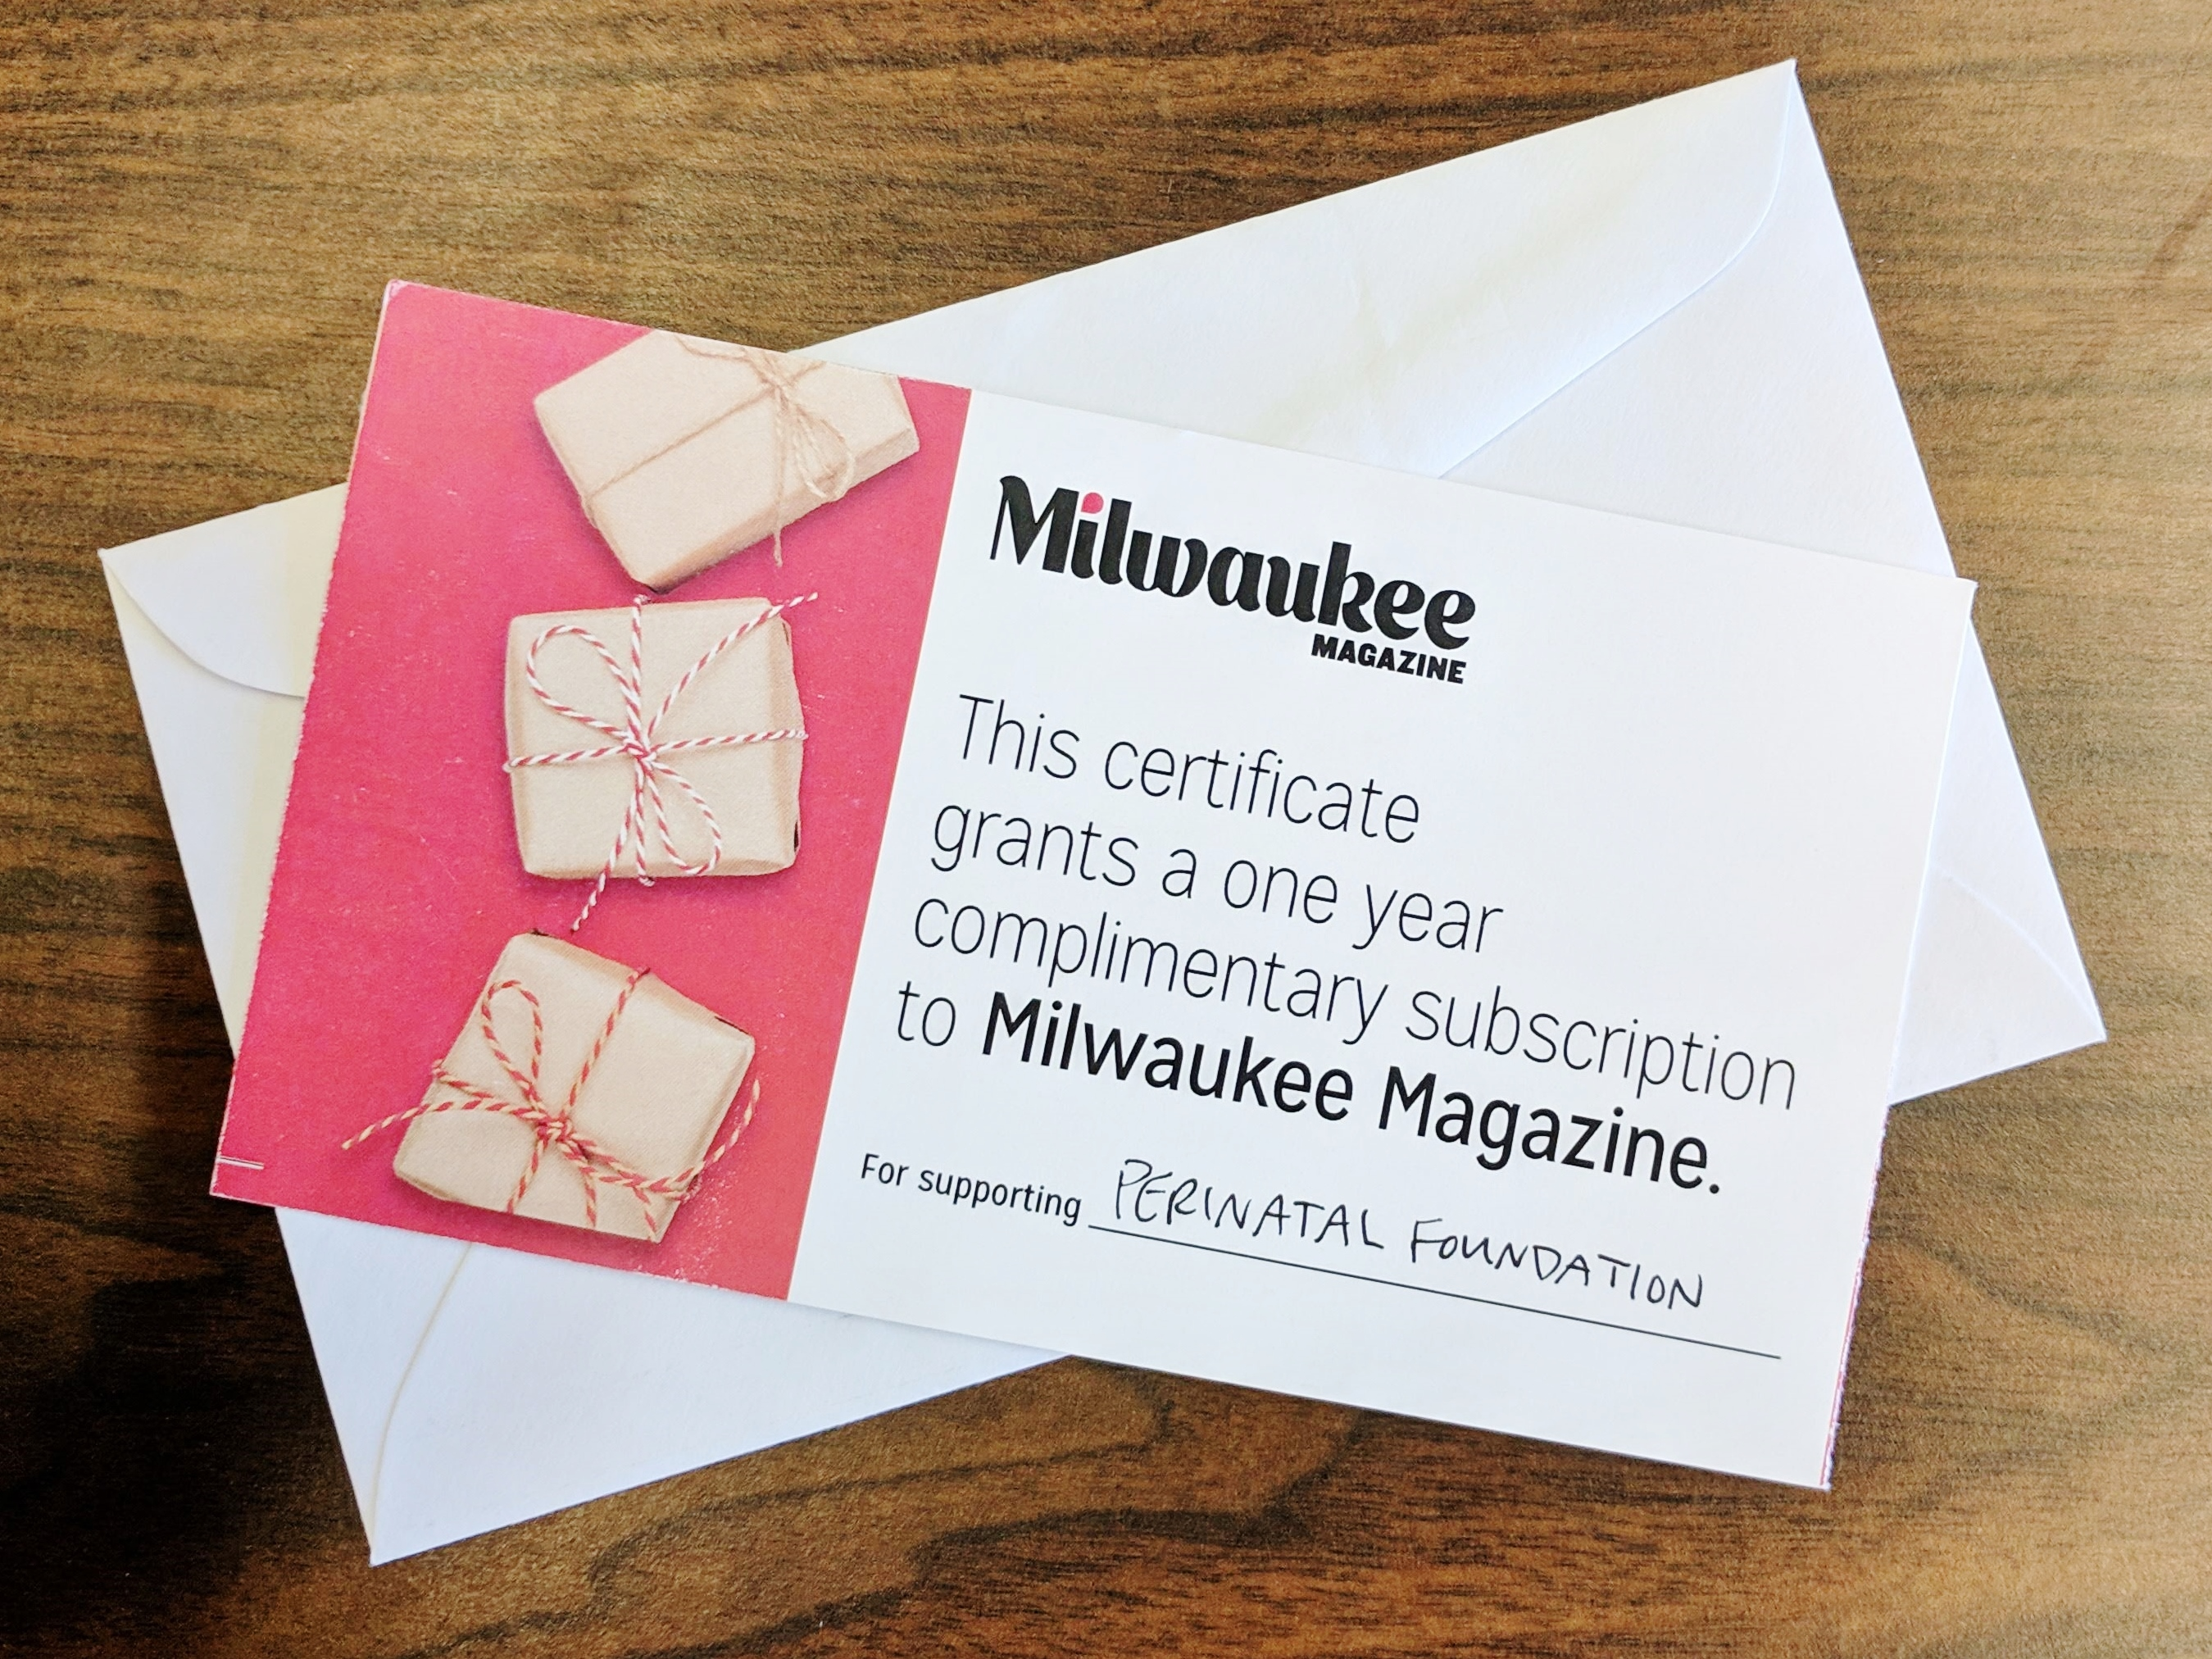 One Year Subscription to Milwaukee Magazine